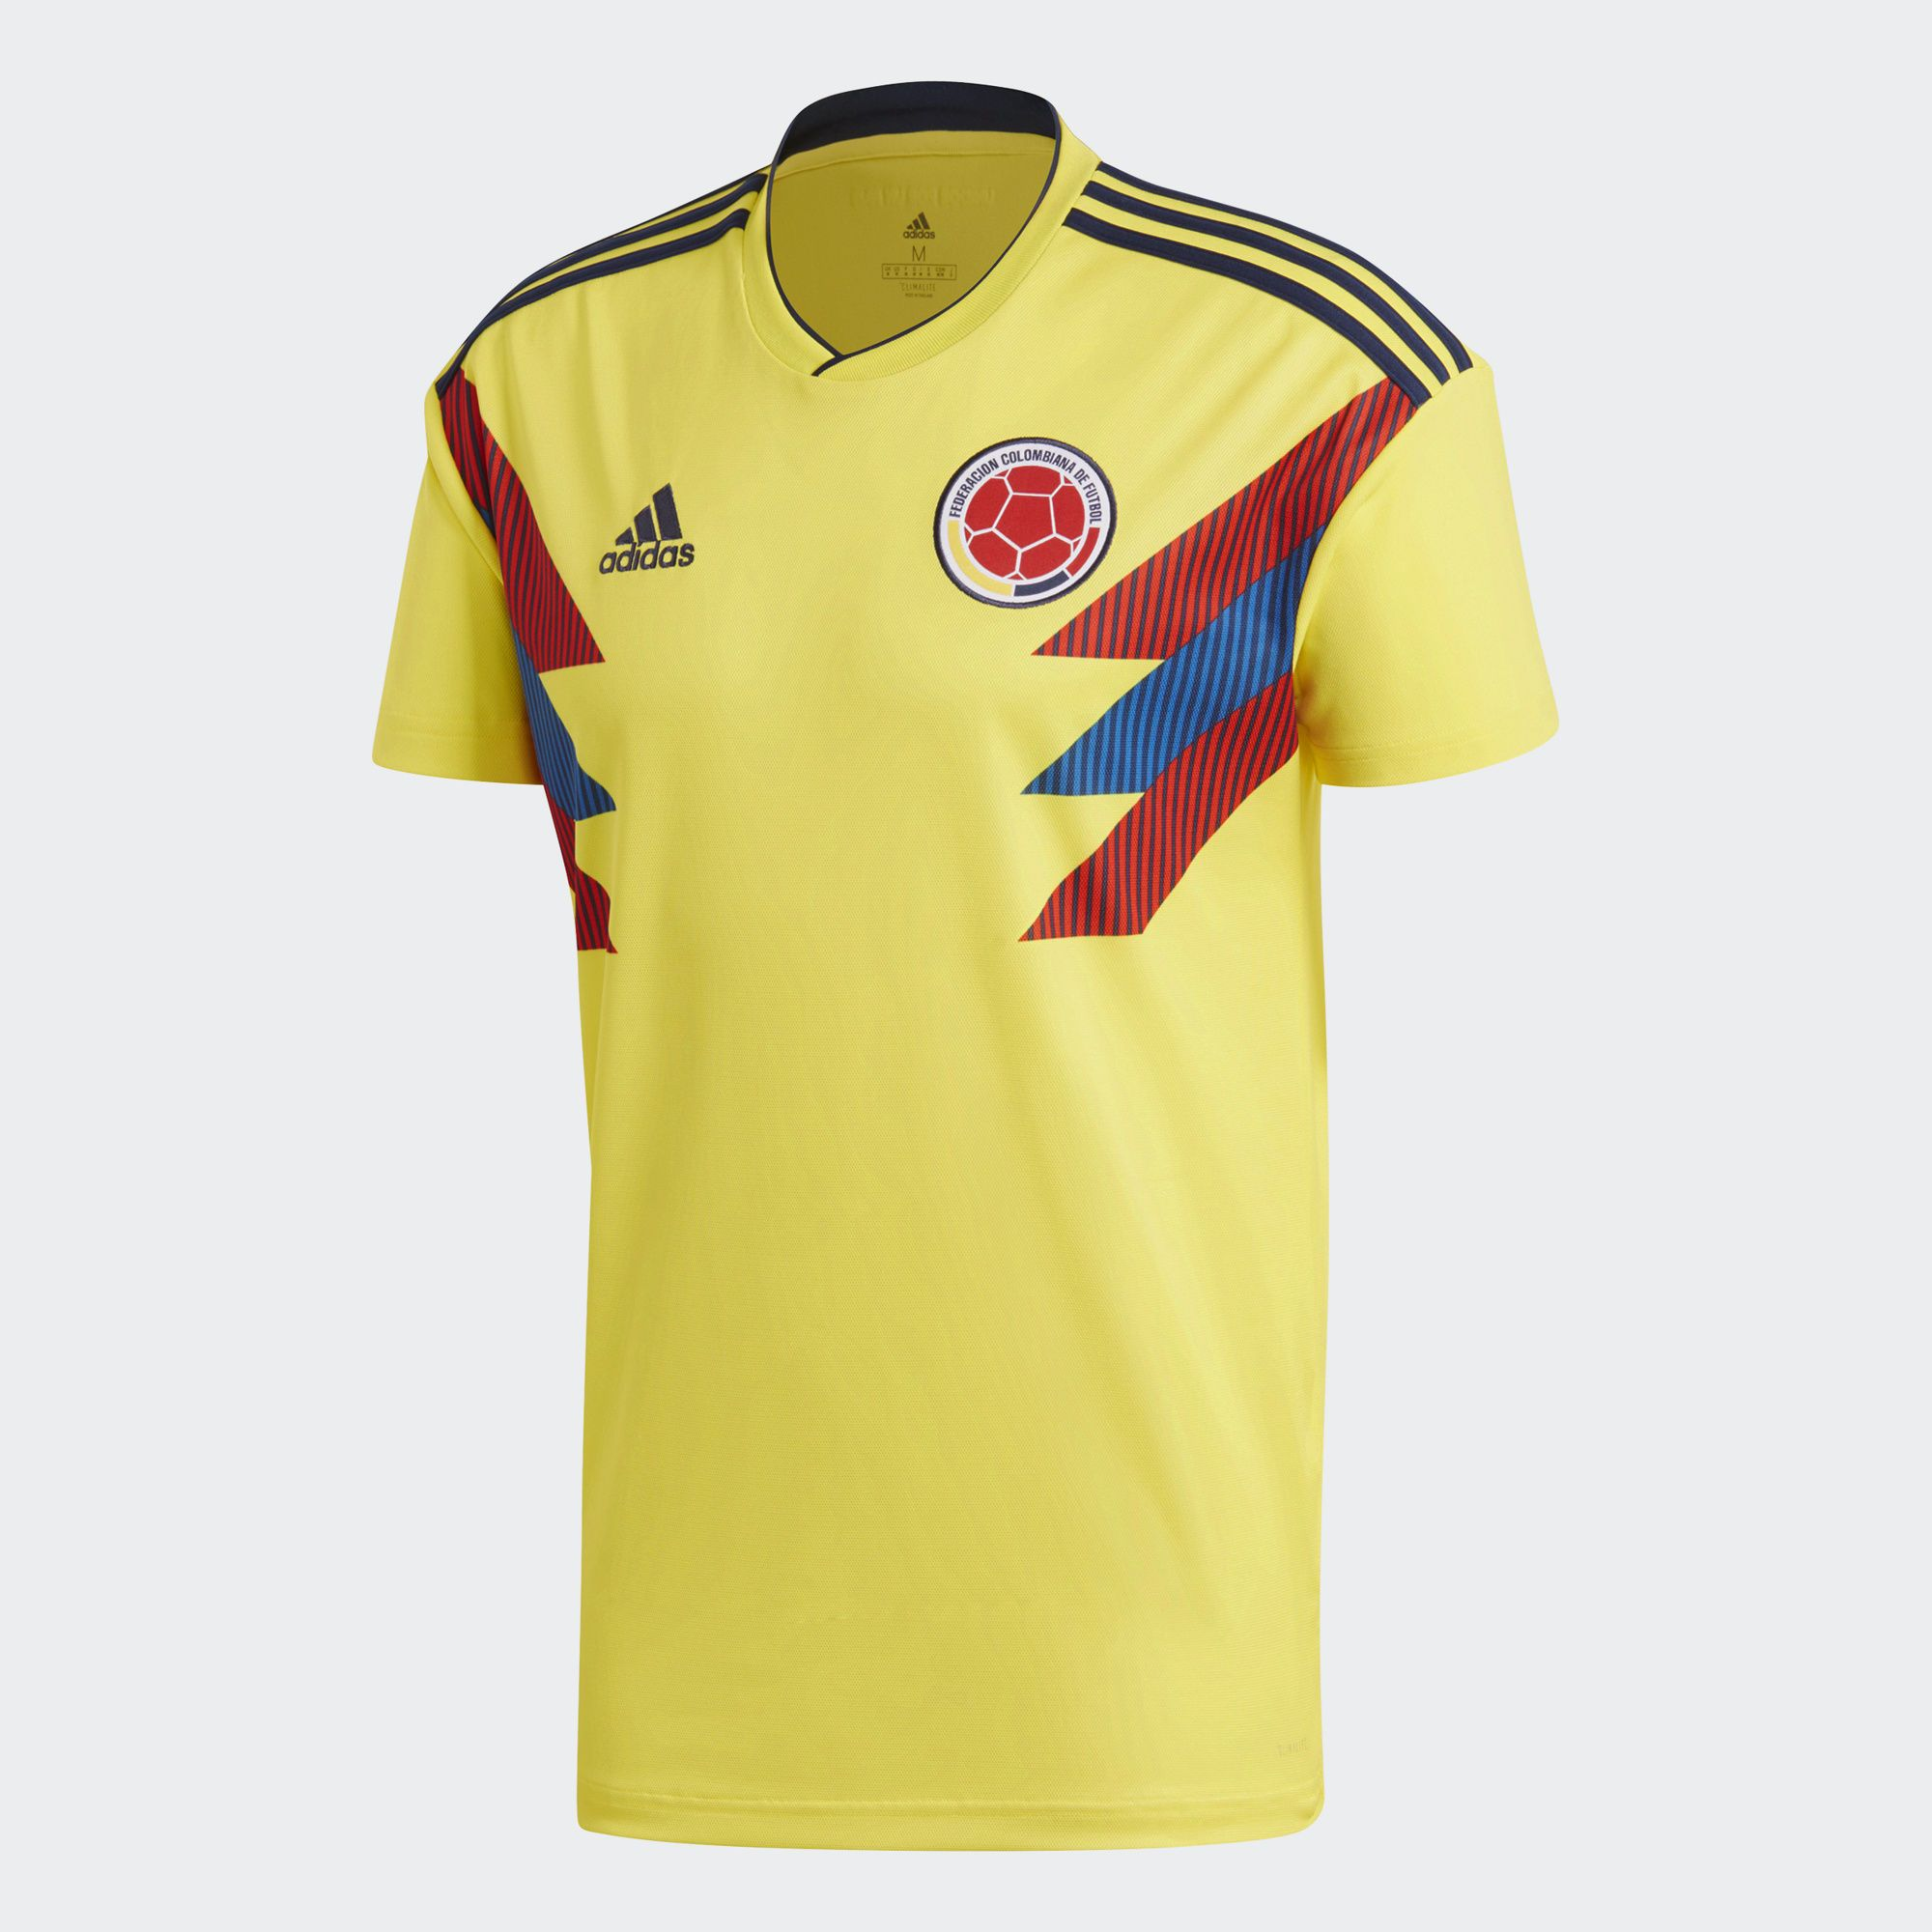 Colombia 2018 World Cup Adidas Home Kit | 17/18 Kits | Football shirt blog